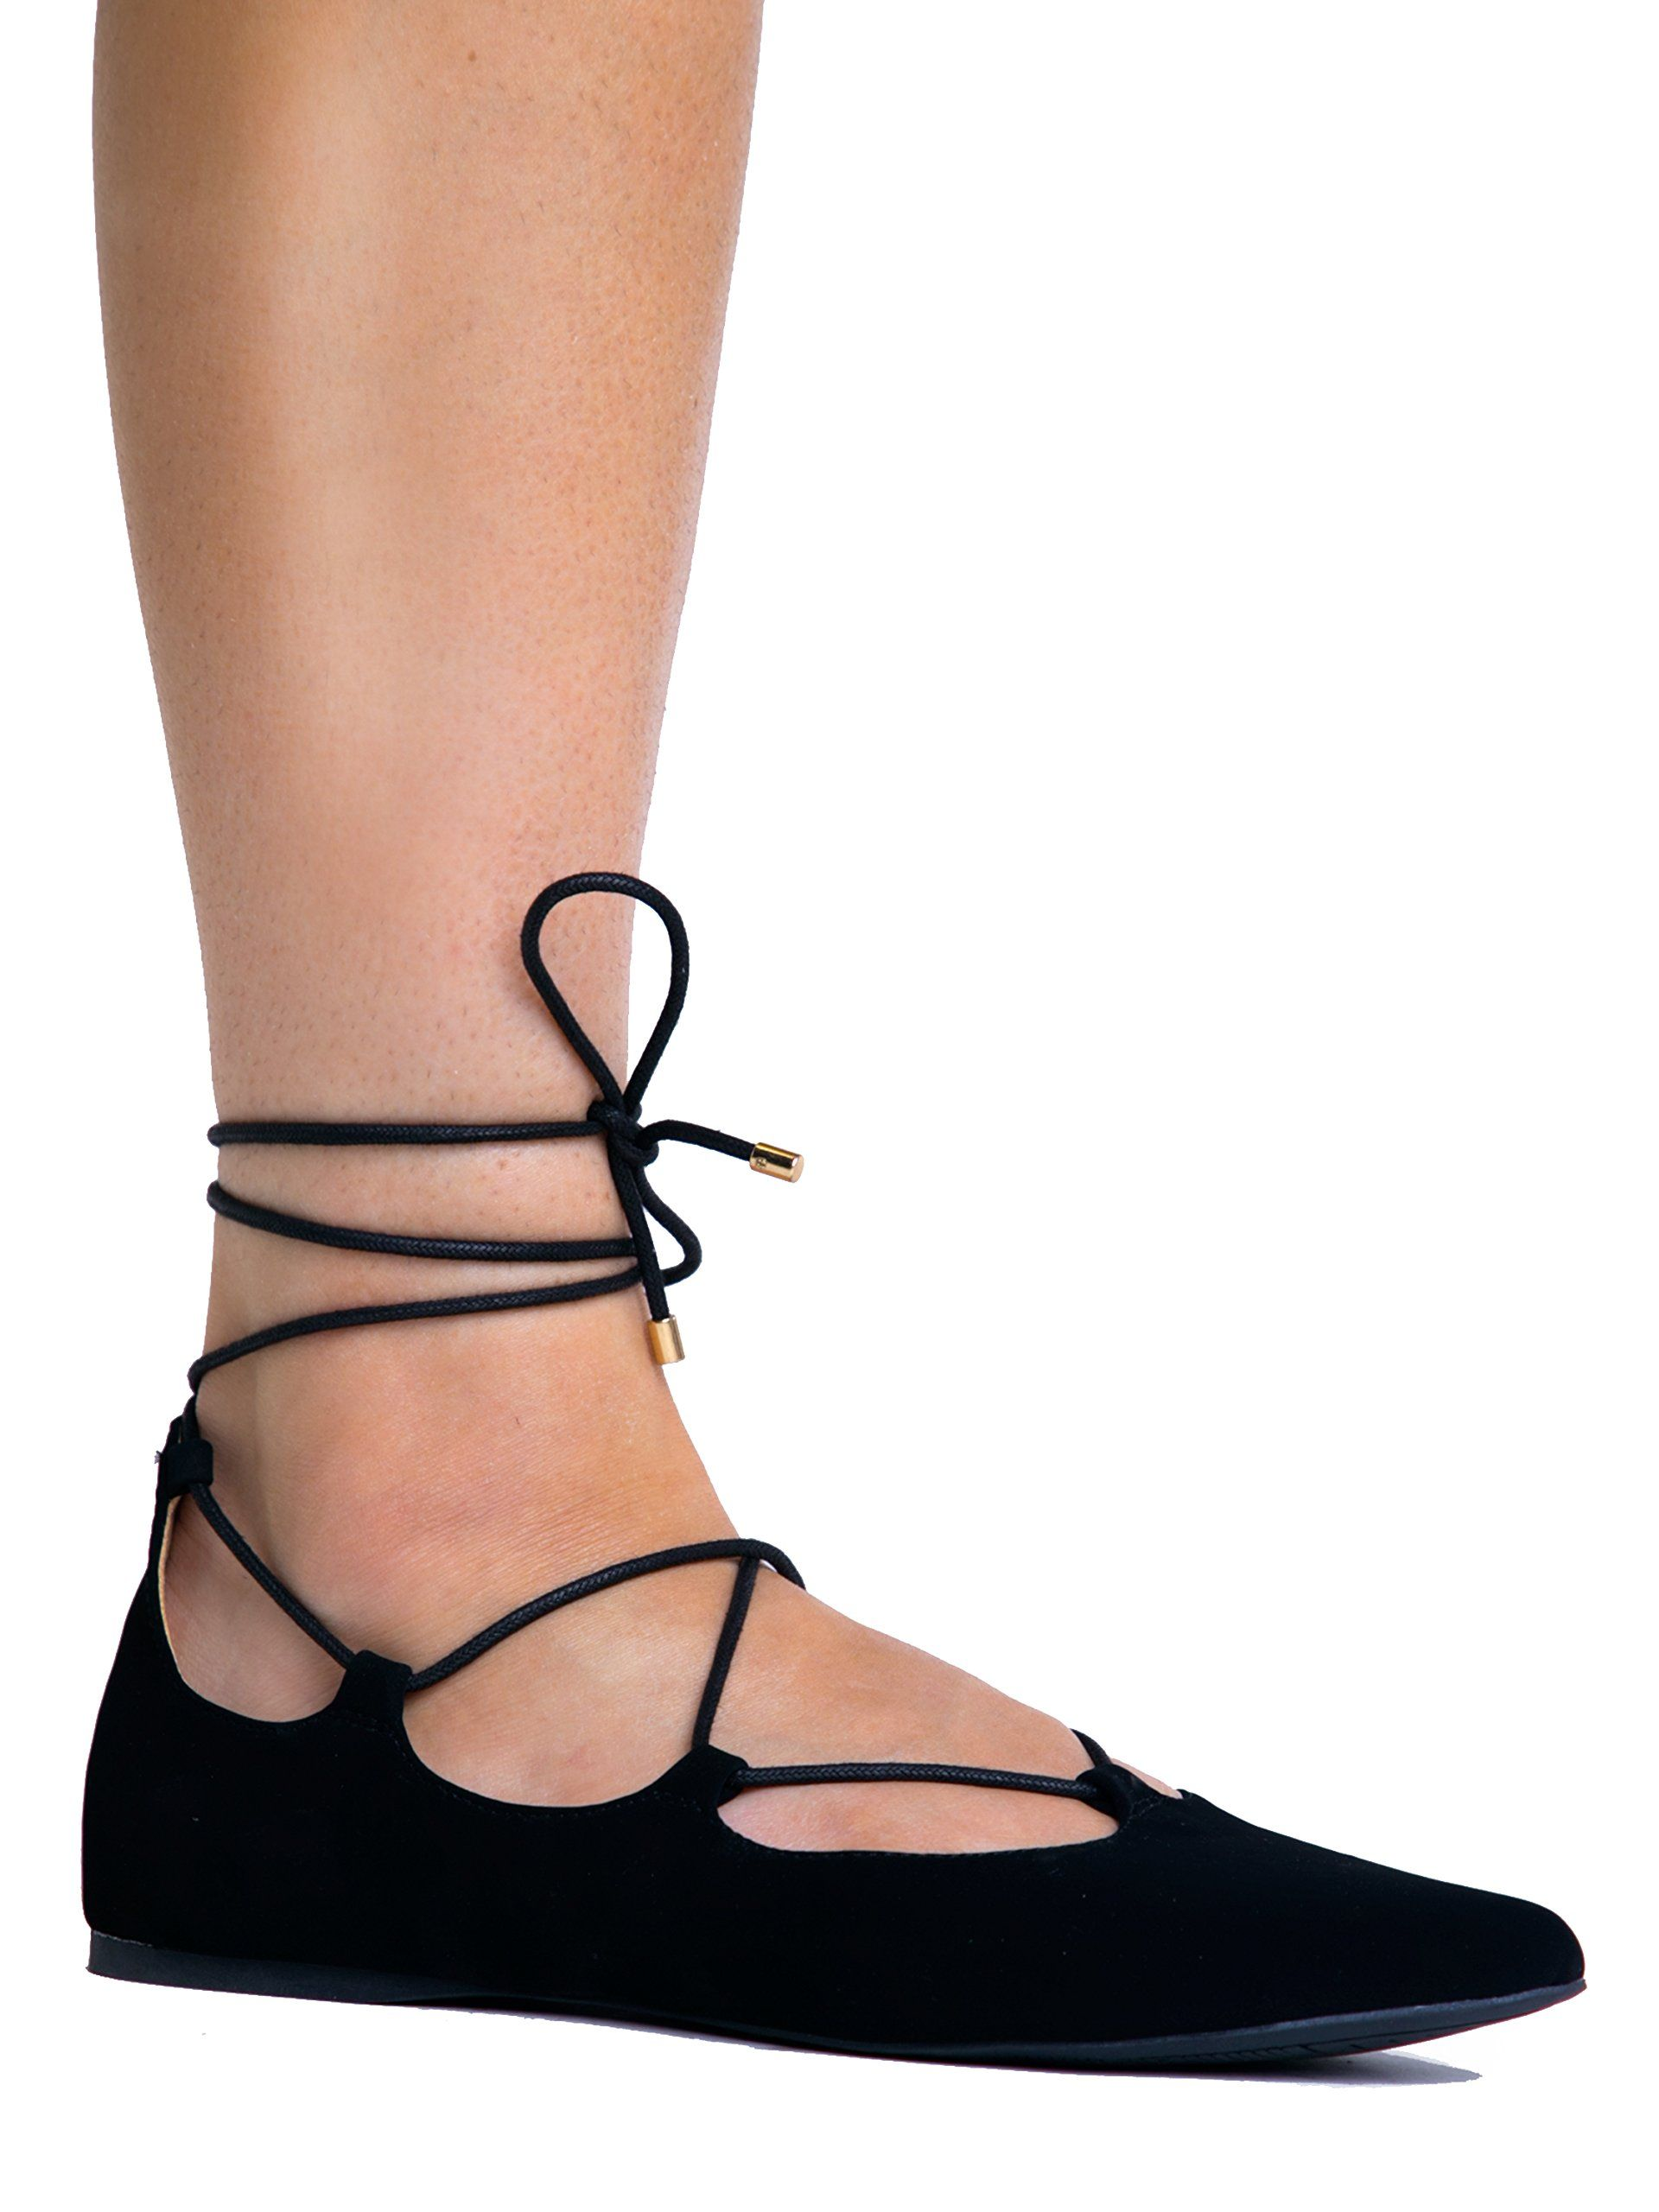 Lace Up Ankle Tie Pointed Toe Ghillie Ballet Flat 8.5. THE LATEST TREND: Lace  up ghillie heels and flats are in!… | Lace up sandals, Hipster shoes, Flat  shoes women